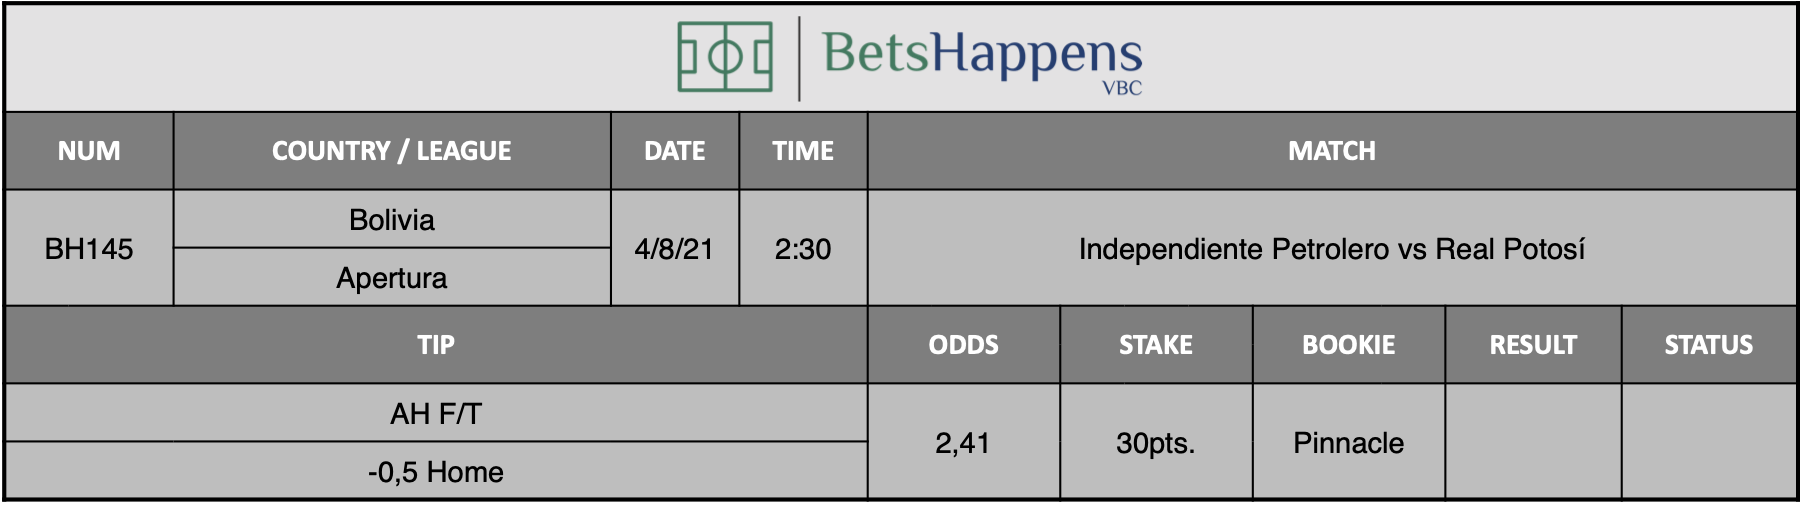 Our advice for the Independiente Petrolero vs Real Potosi match in which AH F / T -0.5 Home is recommended